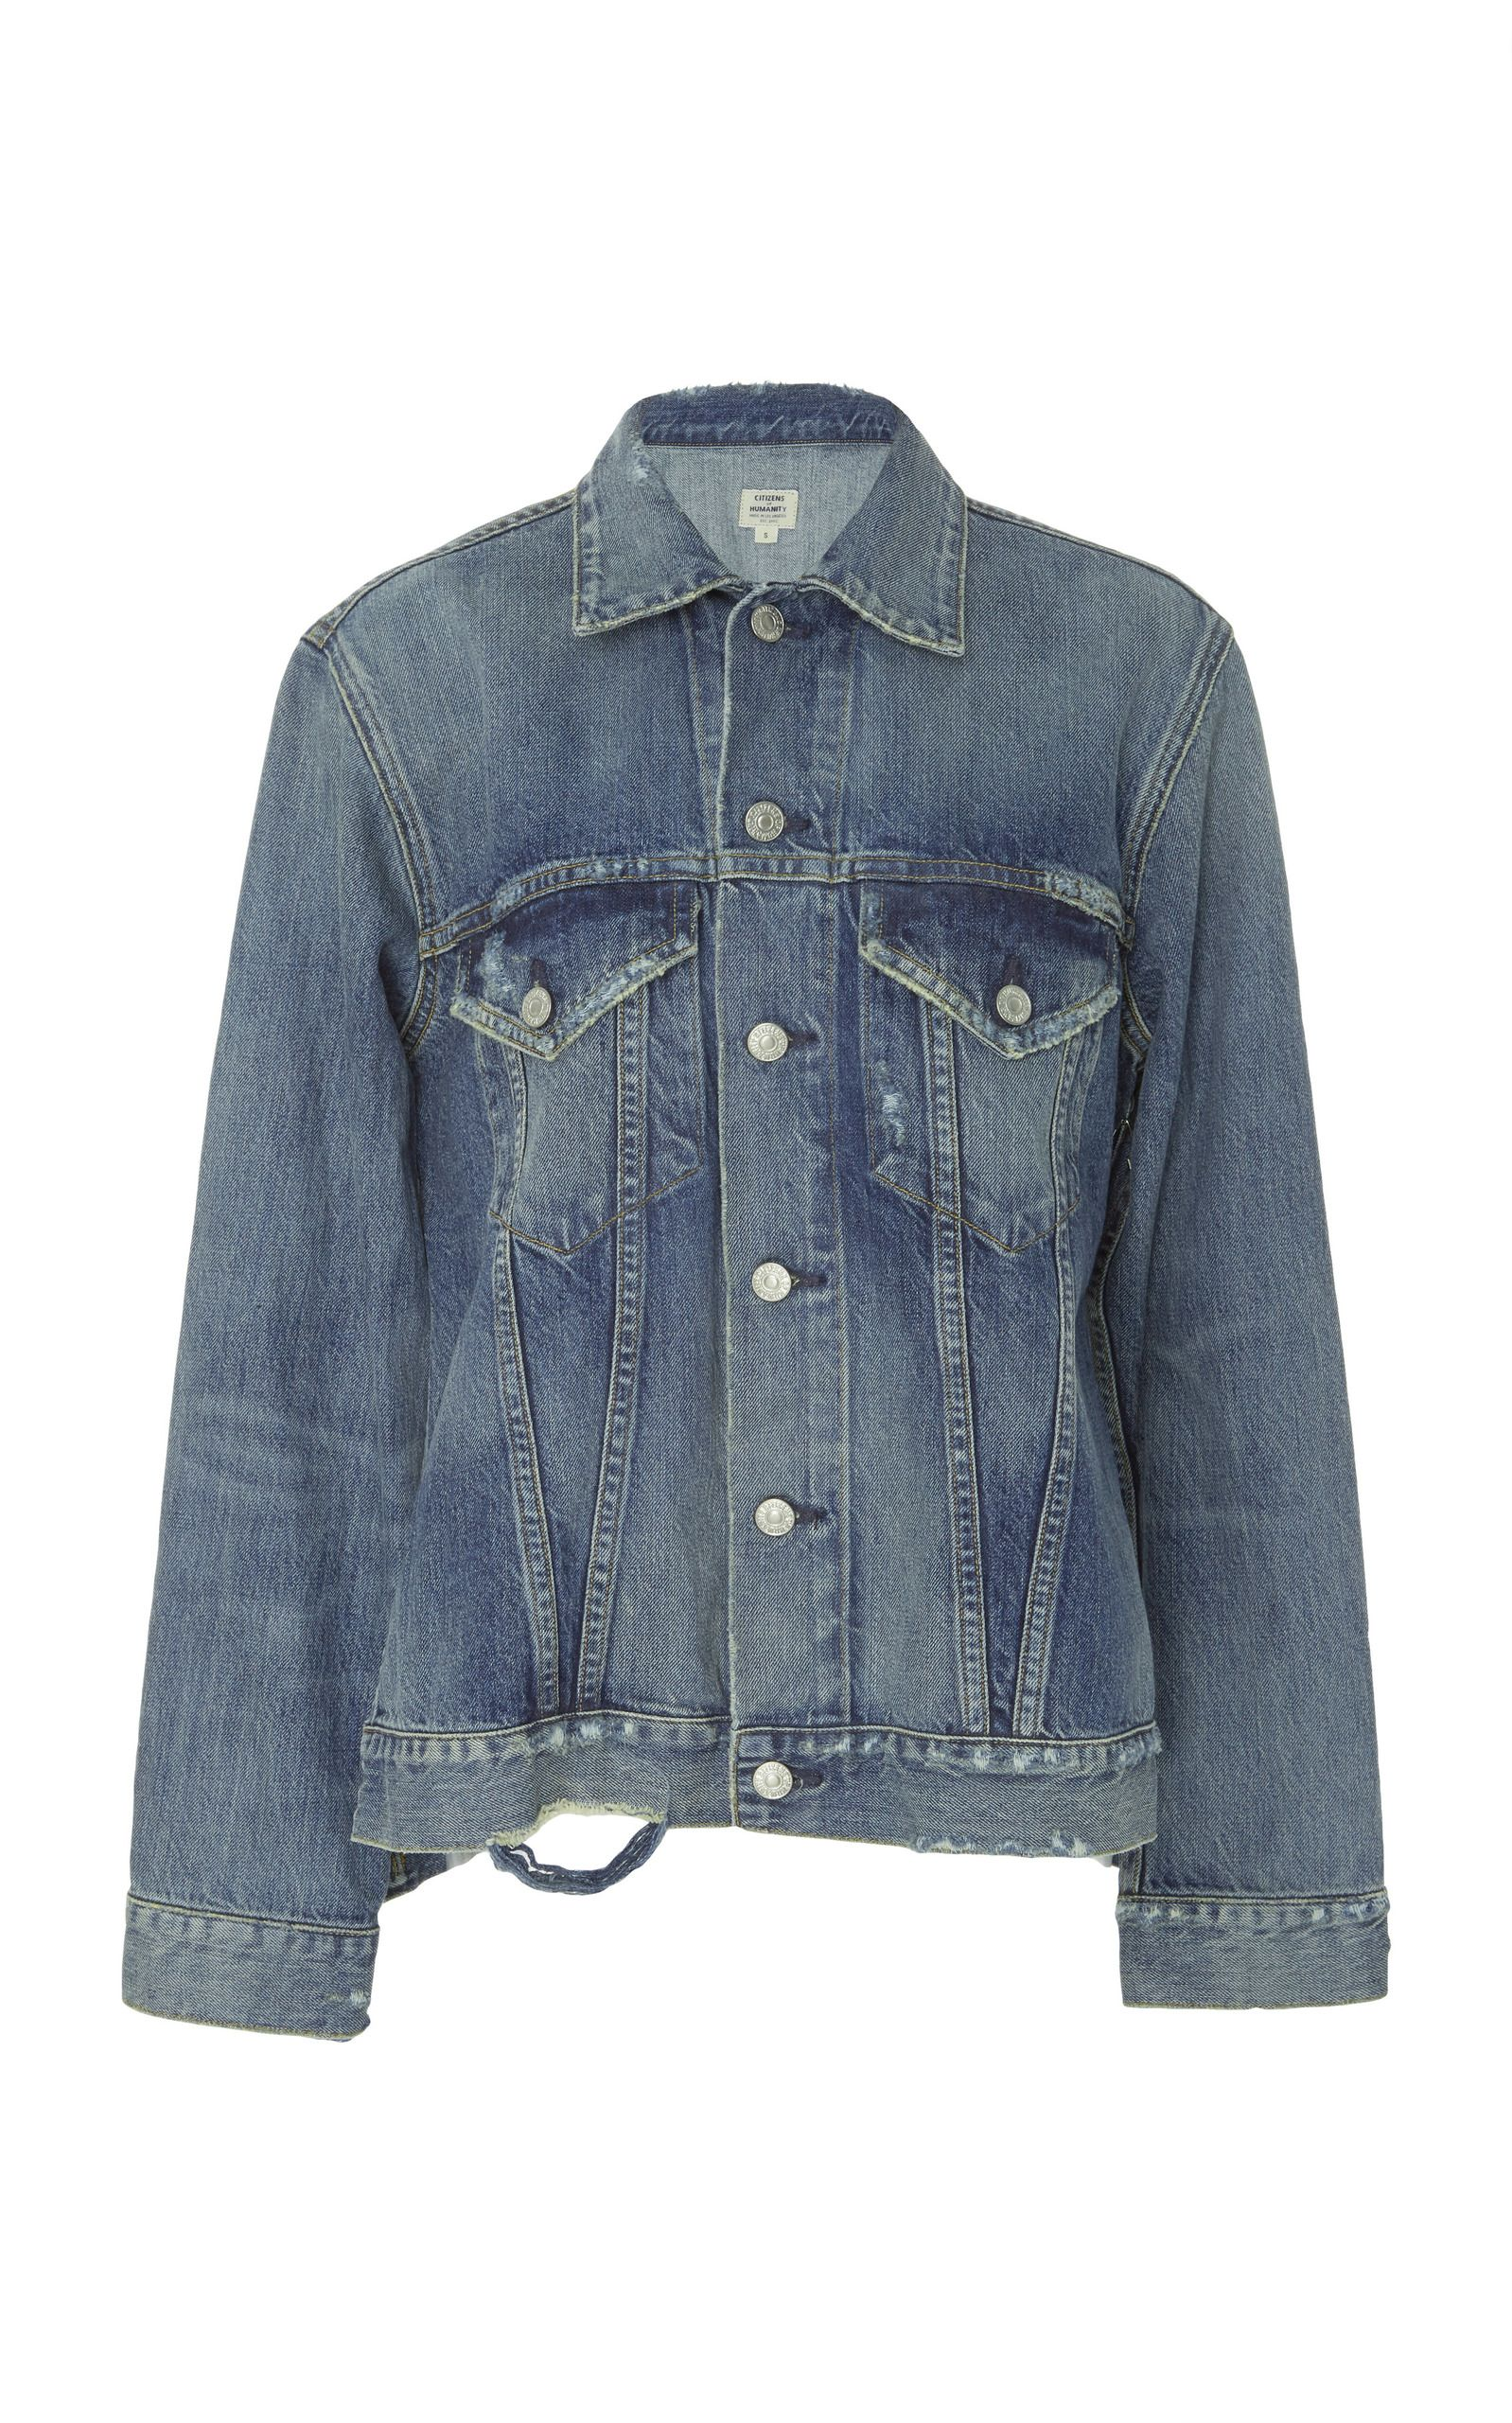 Sidesplit denim jacket by citizens of humanity now available on